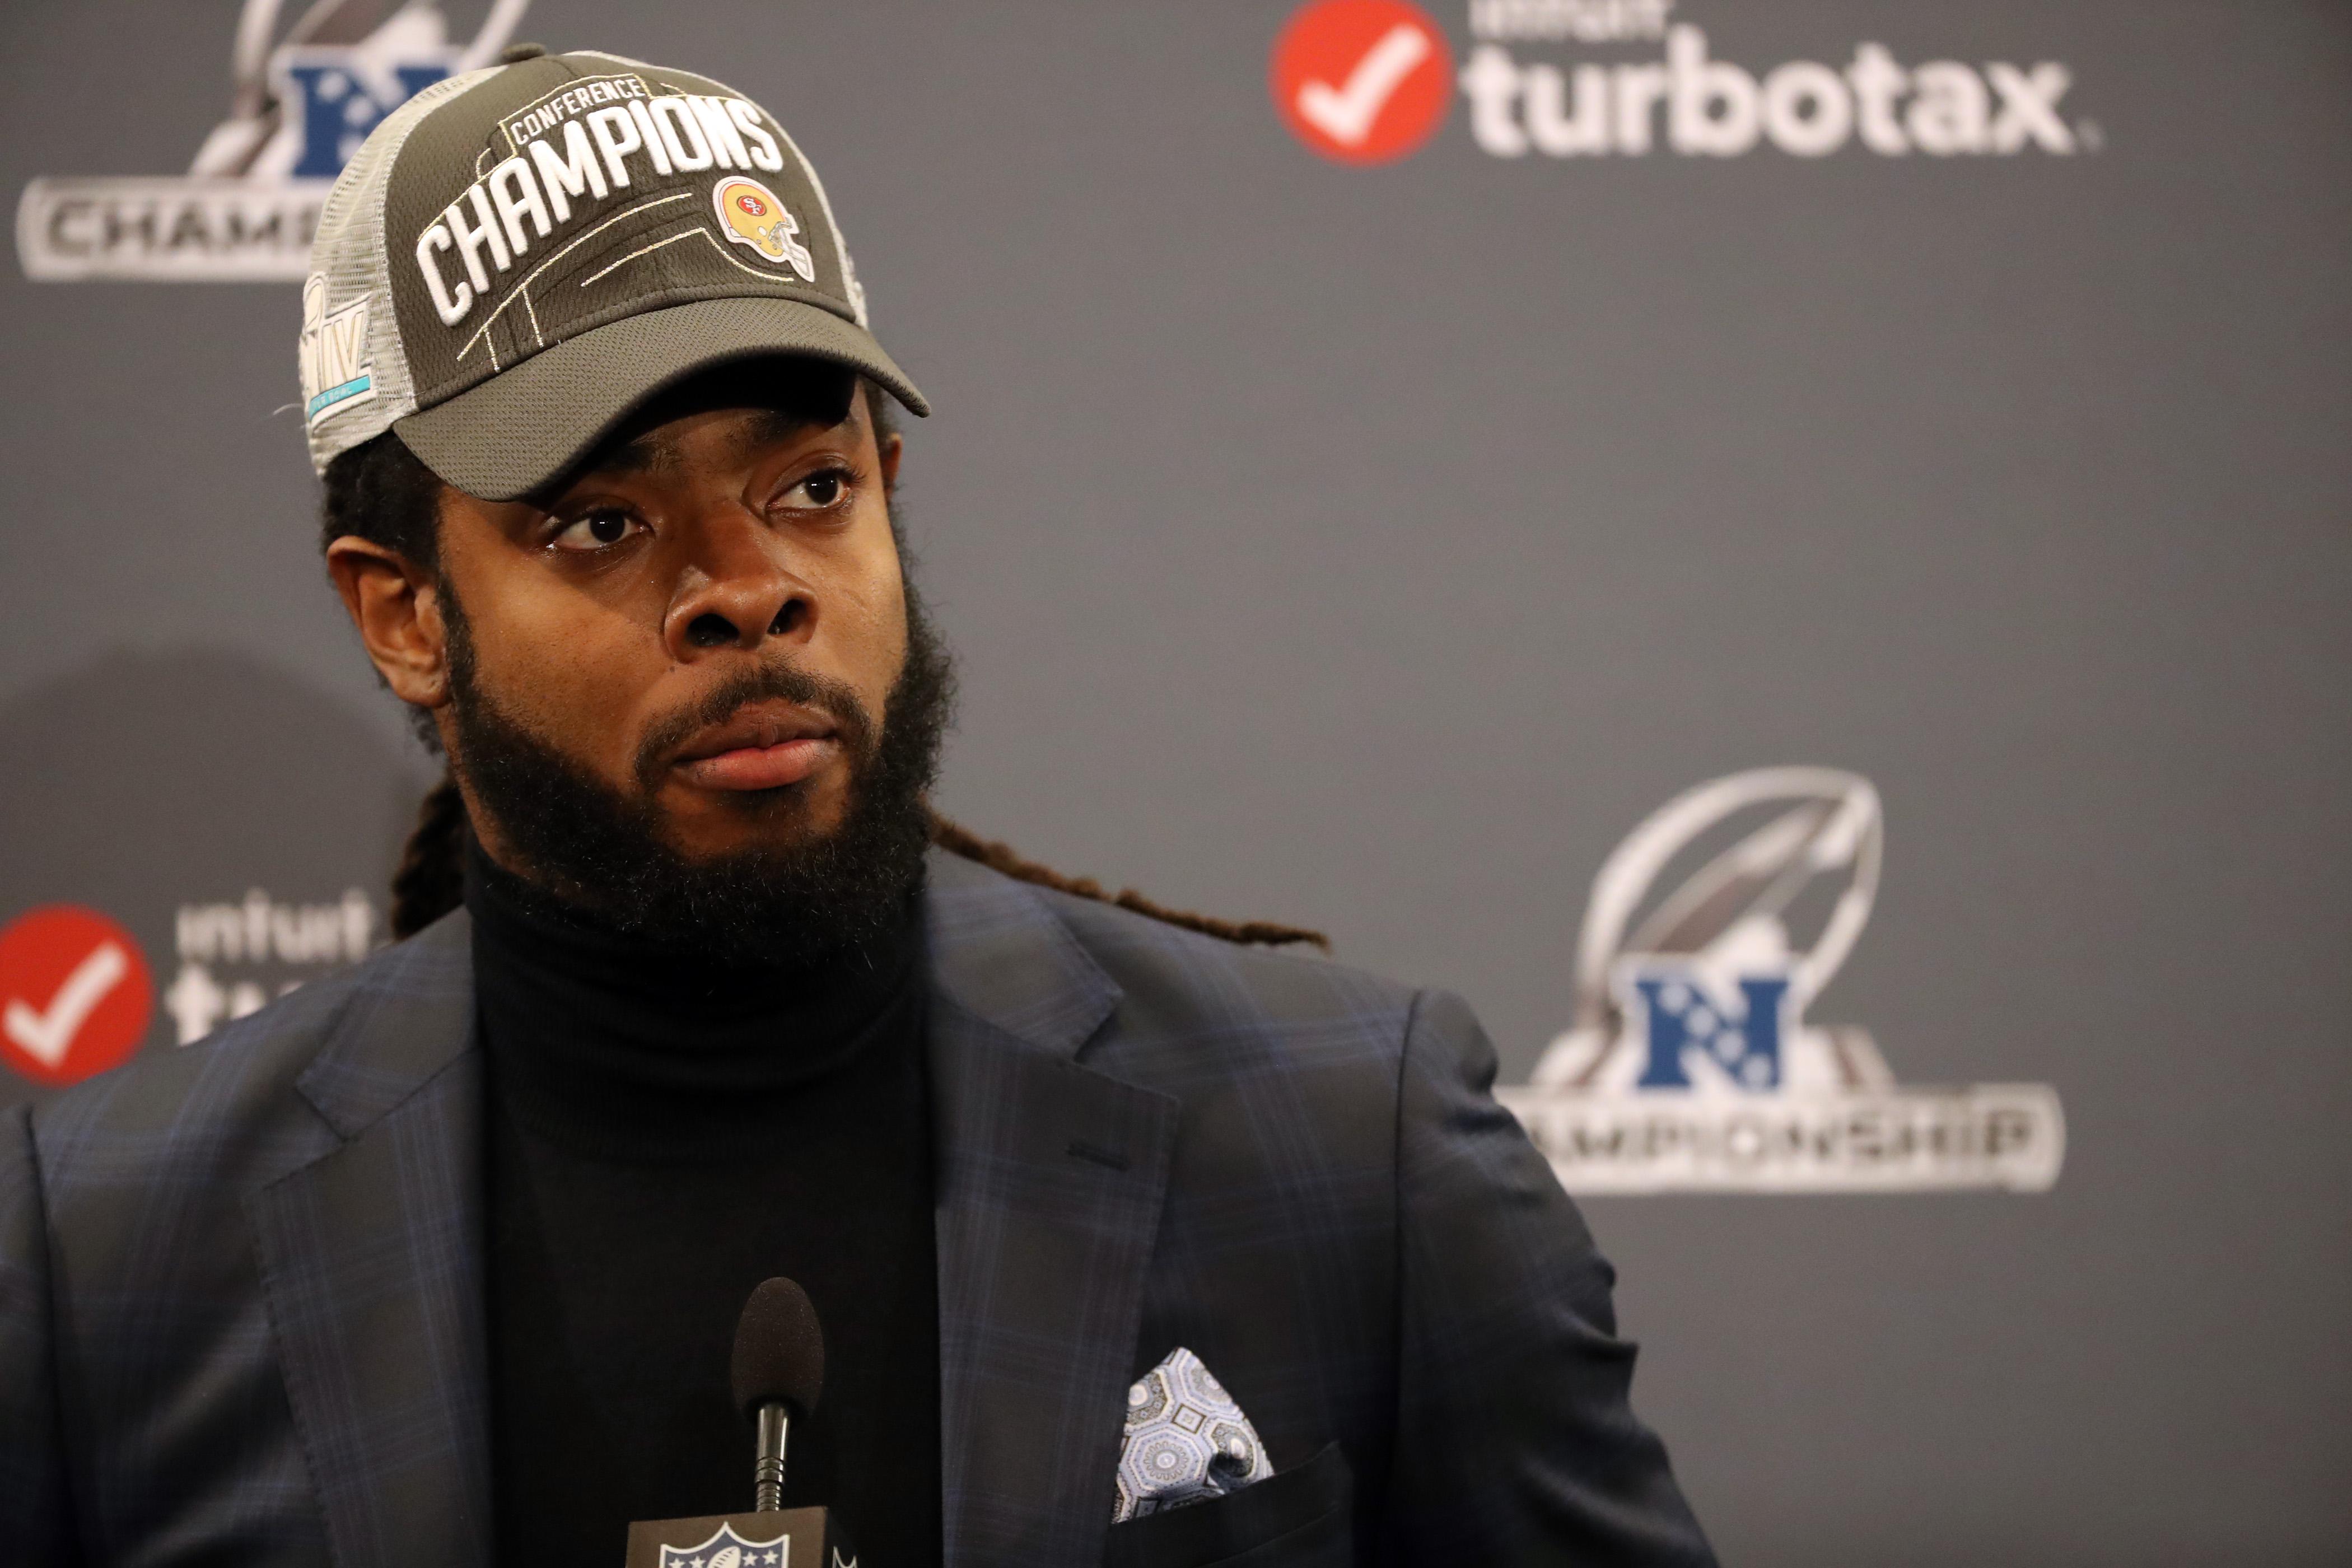 """Richard Sherman doesn't think it's right that Cam Newton is being paid less than """"less talented"""" quarterbacks. (Photo by Kiyoshi Mio/Icon Sportswire via Getty Images)"""